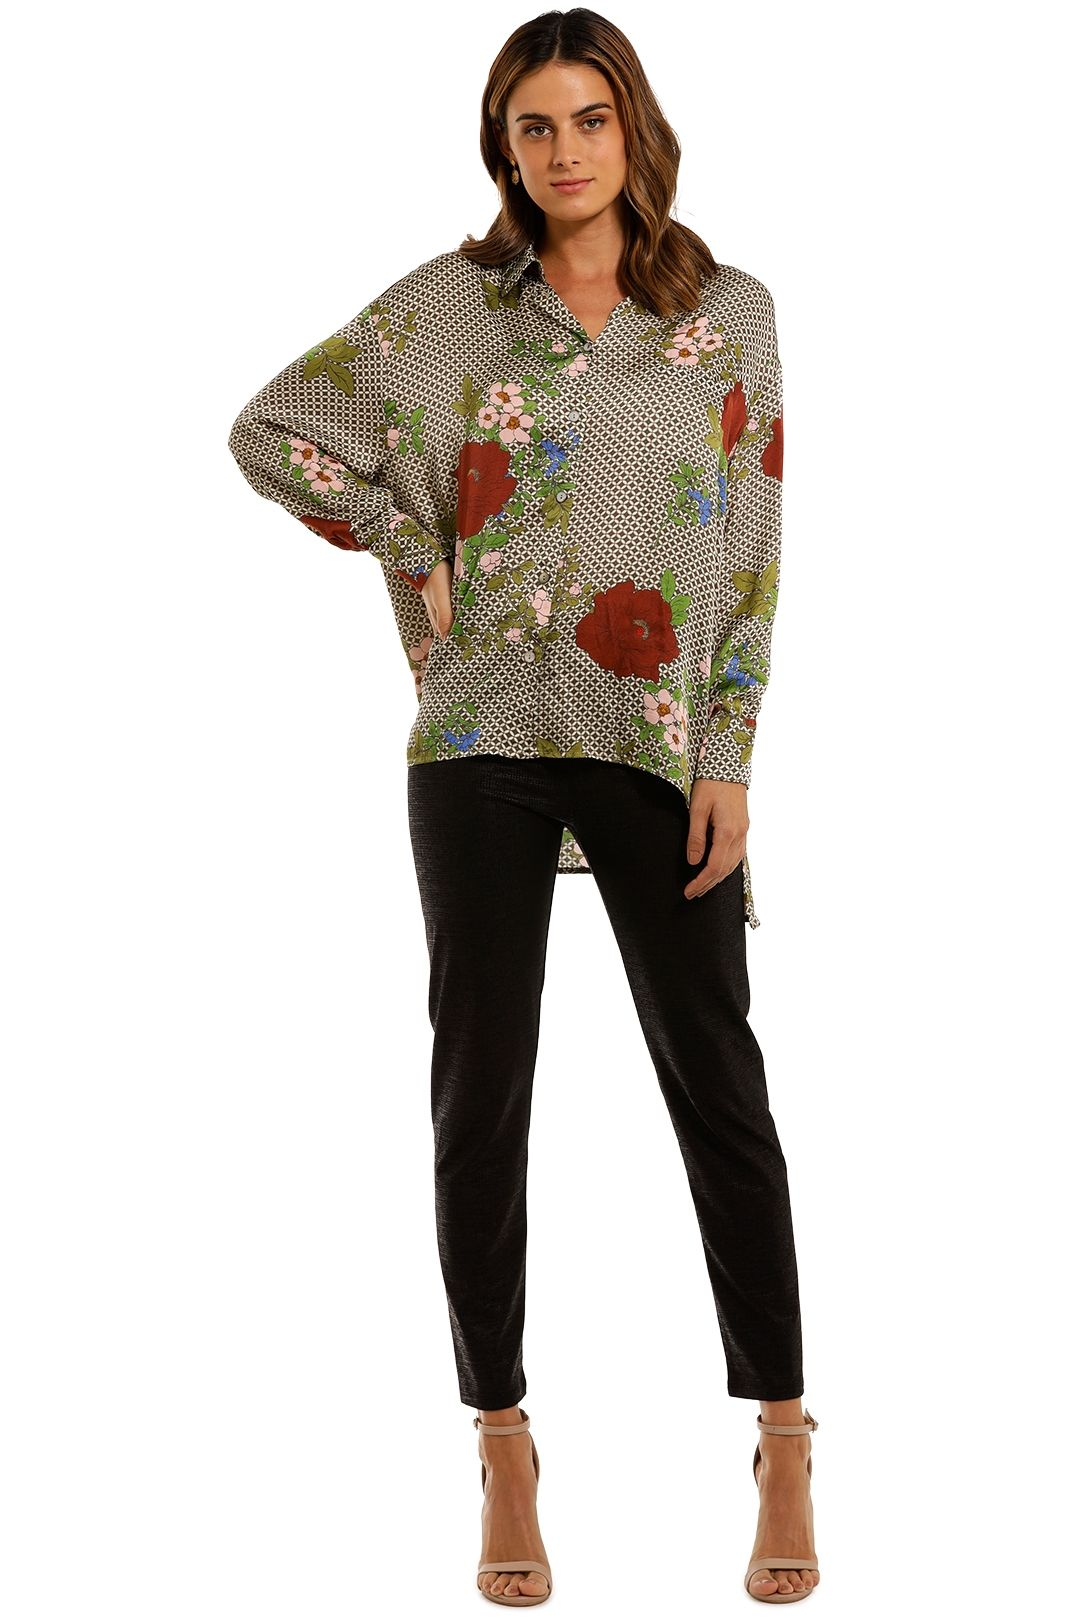 Curate by Trelise Cooper Ladies Blouse shirt